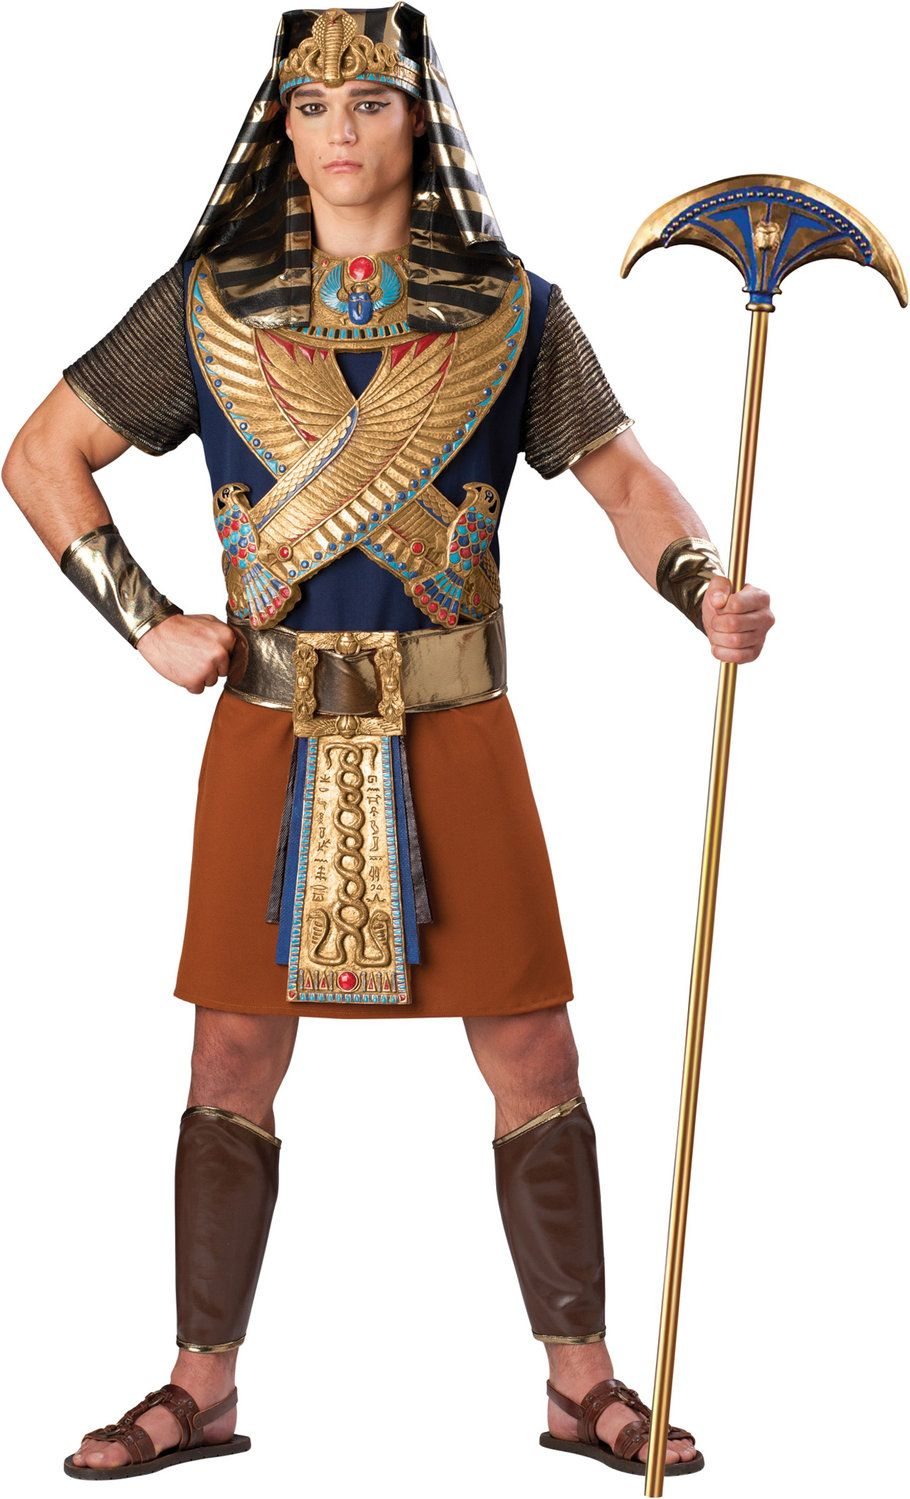 Mens Halloween costume pairs great with Cleopatra for a desert